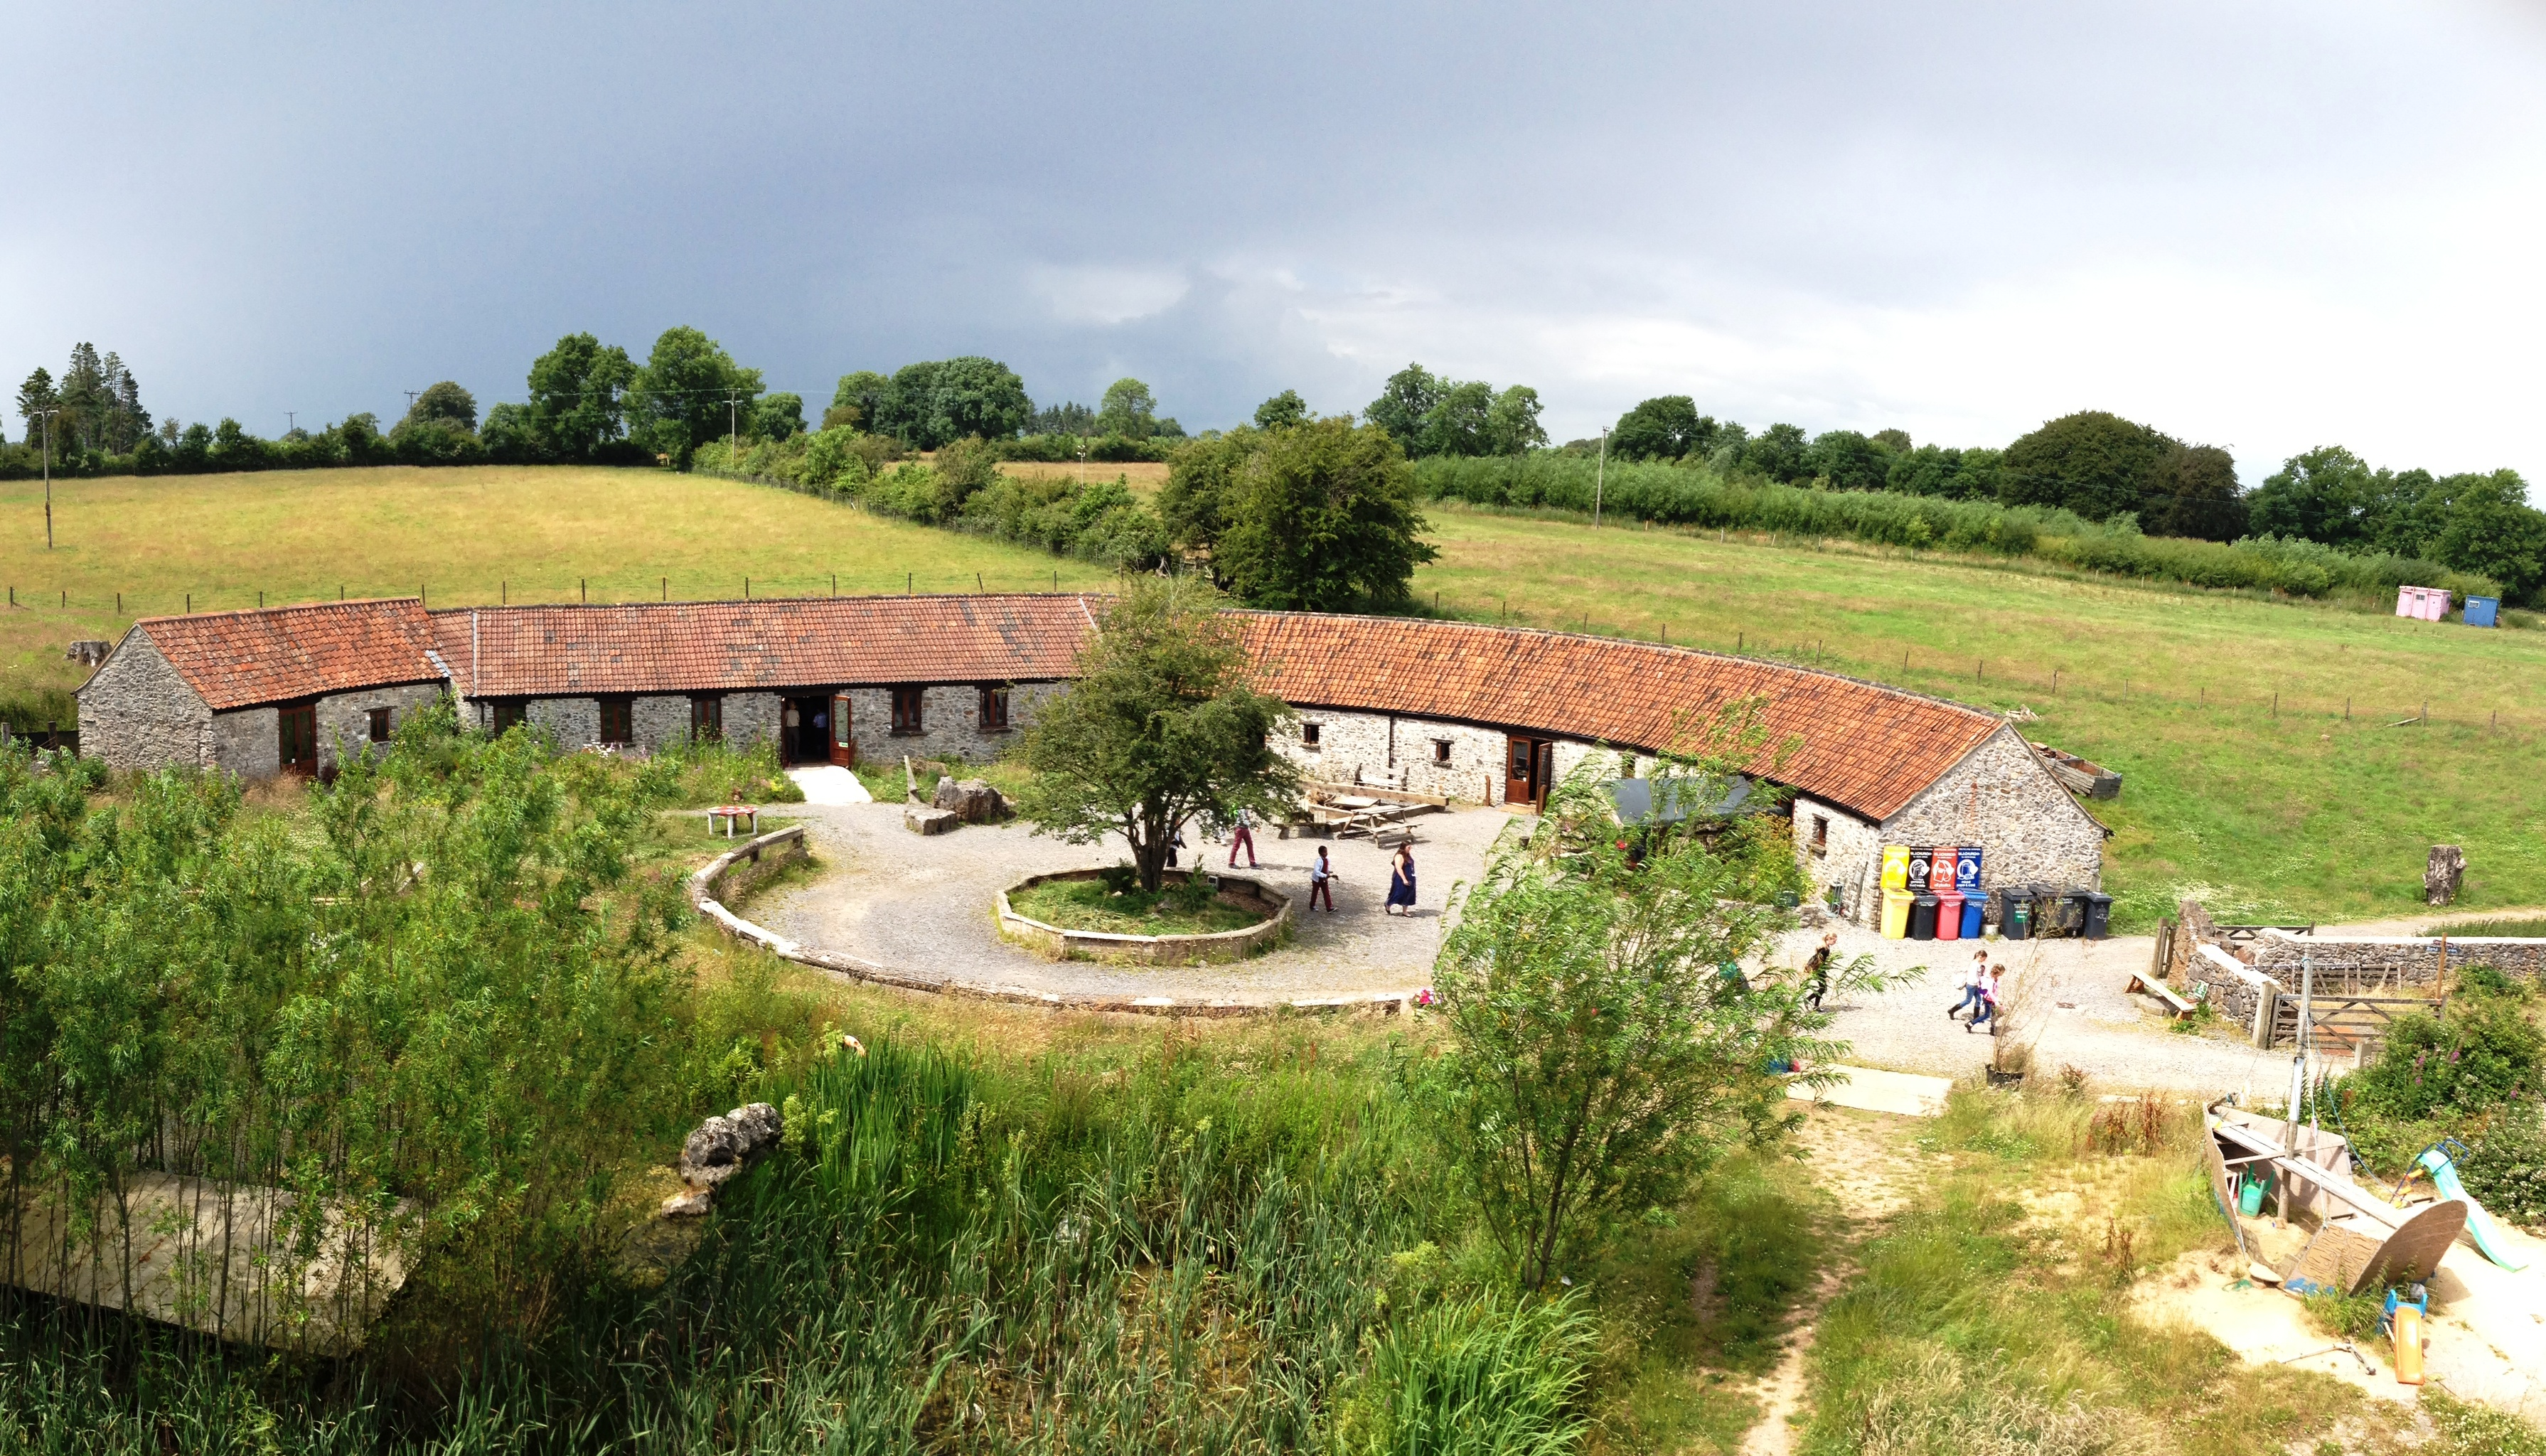 Fernhill Farm Camping Barns Barns For Rent In Somerset